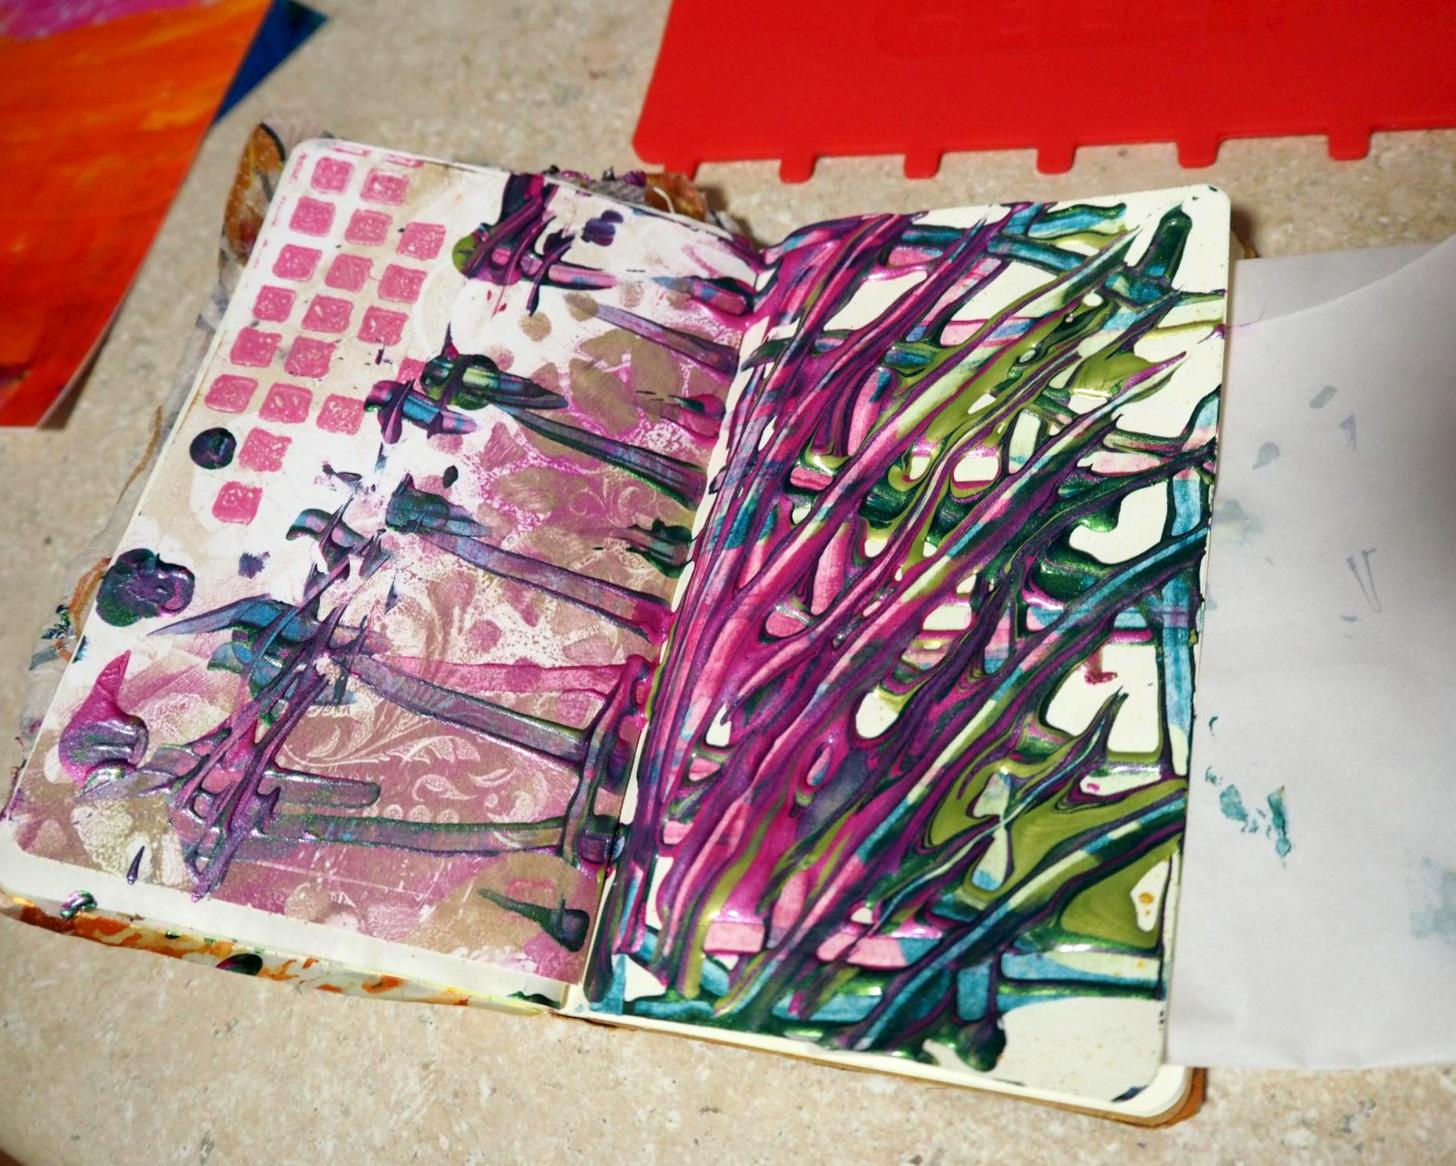 I used a new tool from Gelli Arts to spread the paint out. (see top of photo)  * It was a huge tool for such a little book!